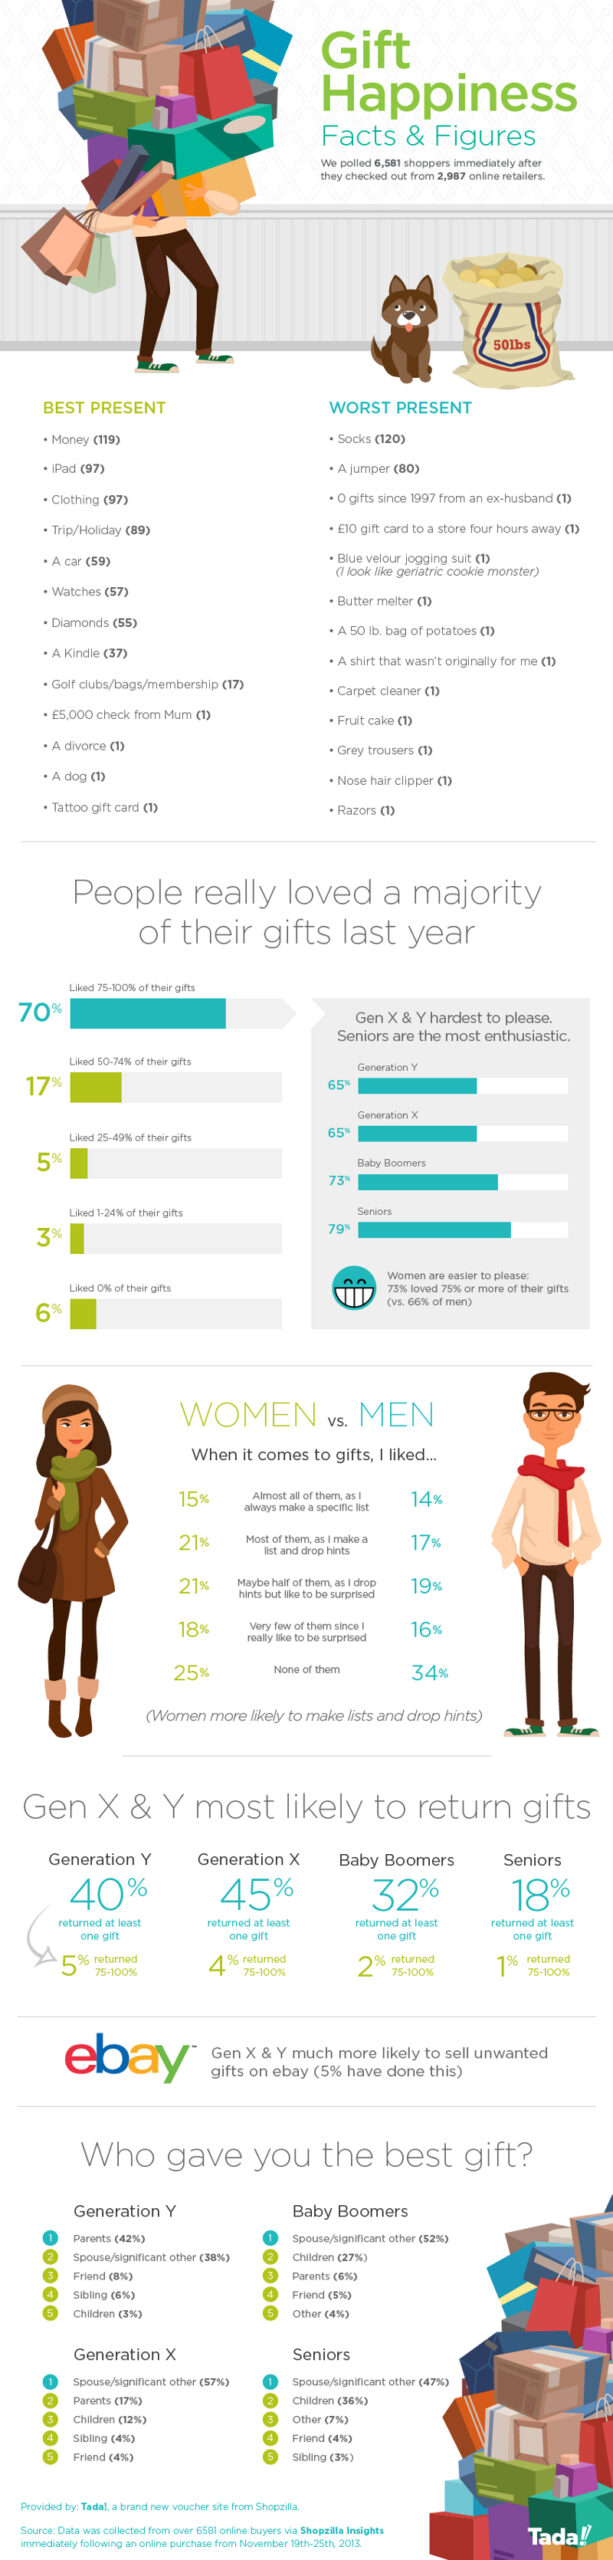 Infographic for facts and statistics about gift-giving and thank you messages for a gift